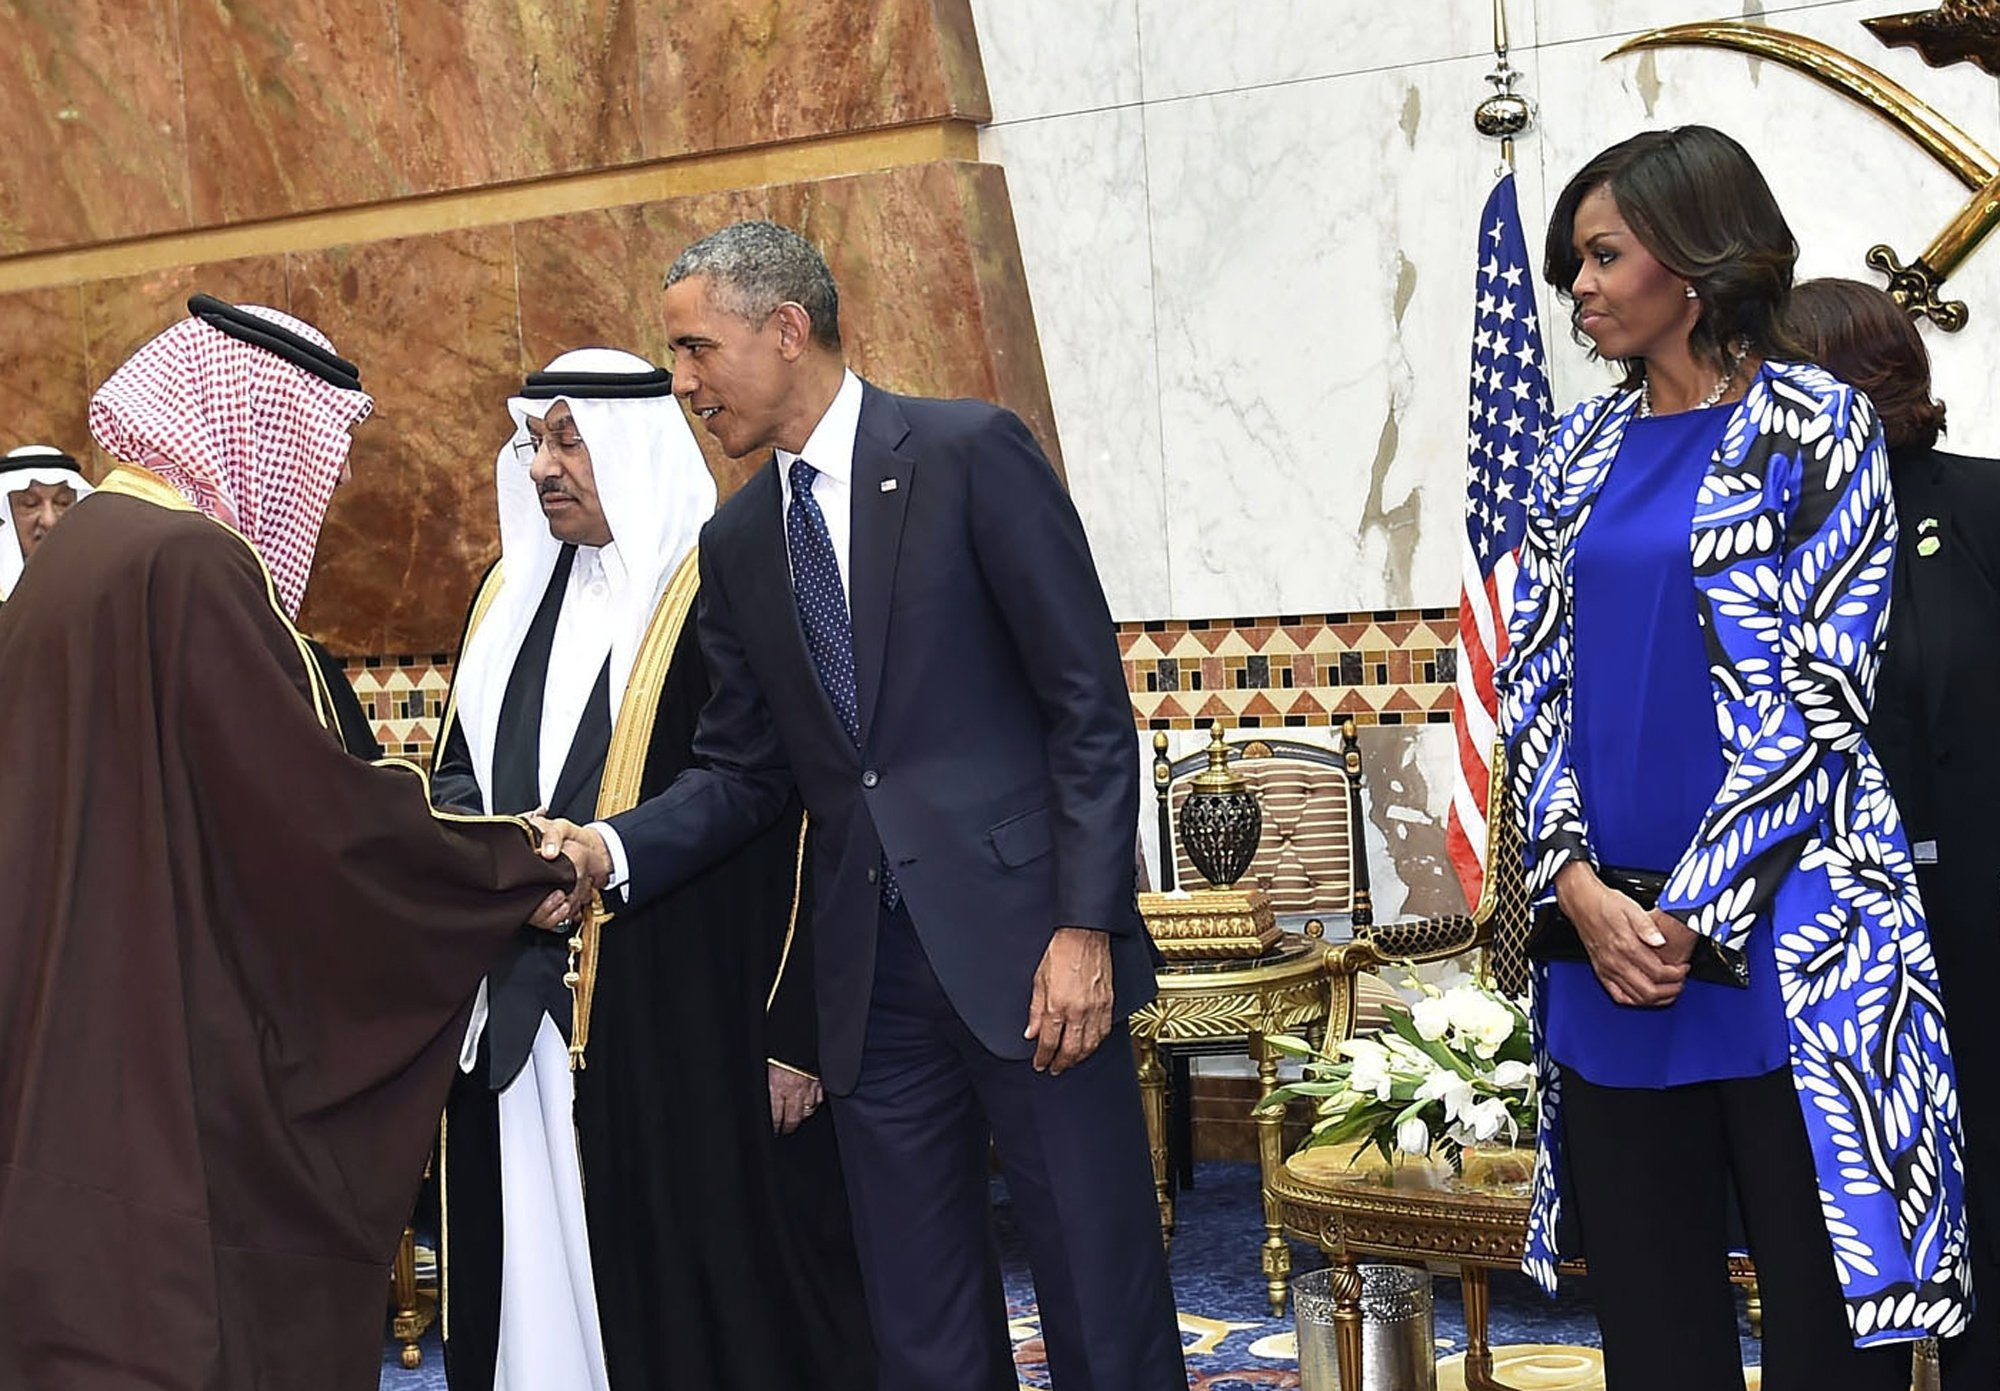 michelle obama flouts saudi dress code for women goes out michelle obama flouts saudi dress code for women goes out headscarf during com